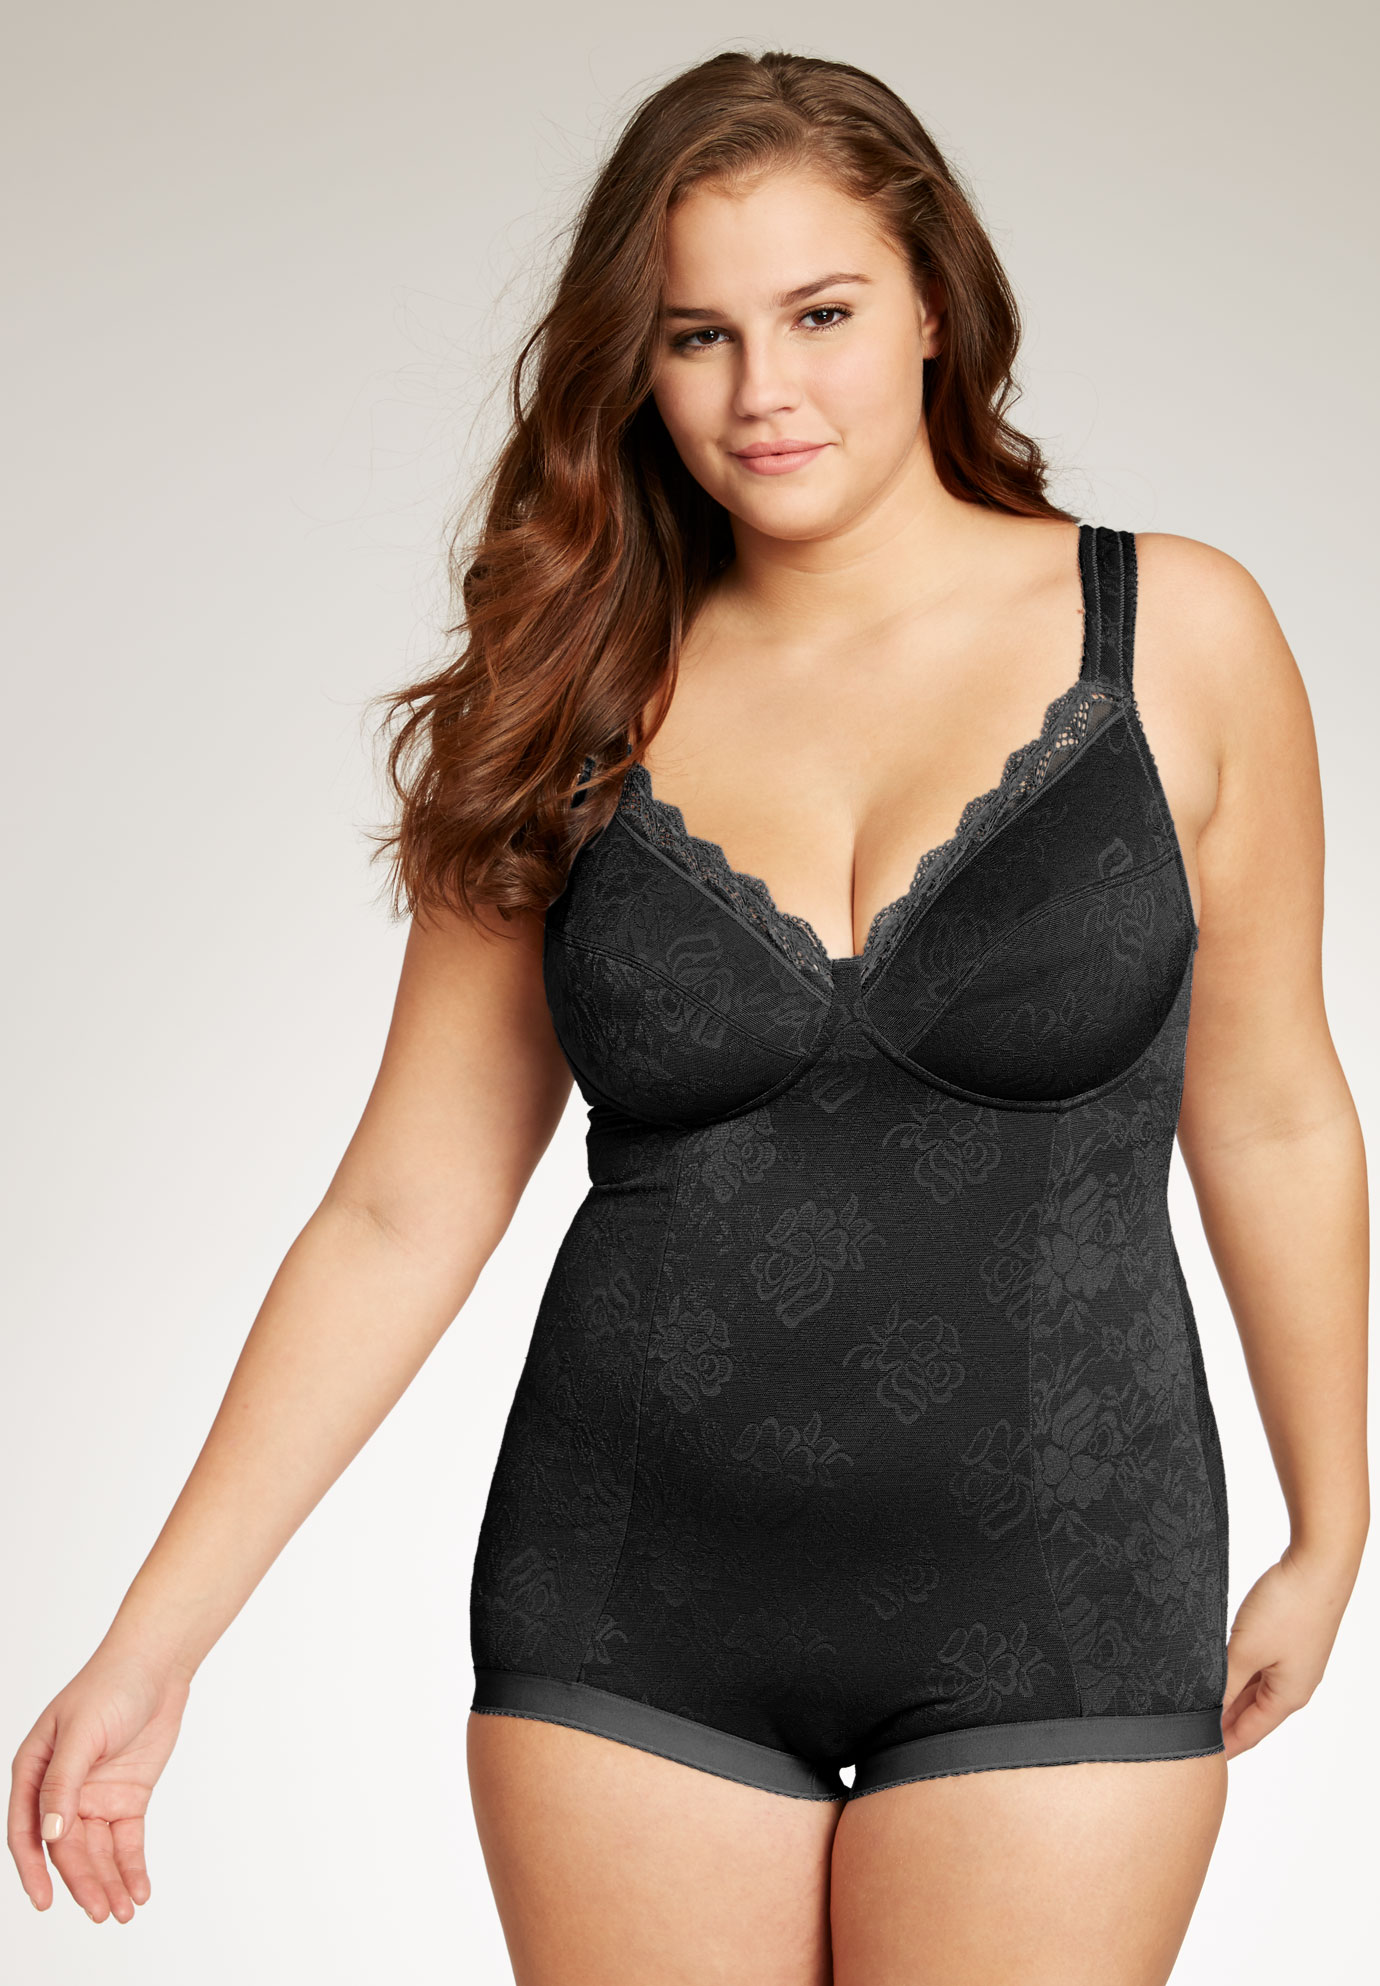 Lace Body Briefer By Secret Solutions Curvewear